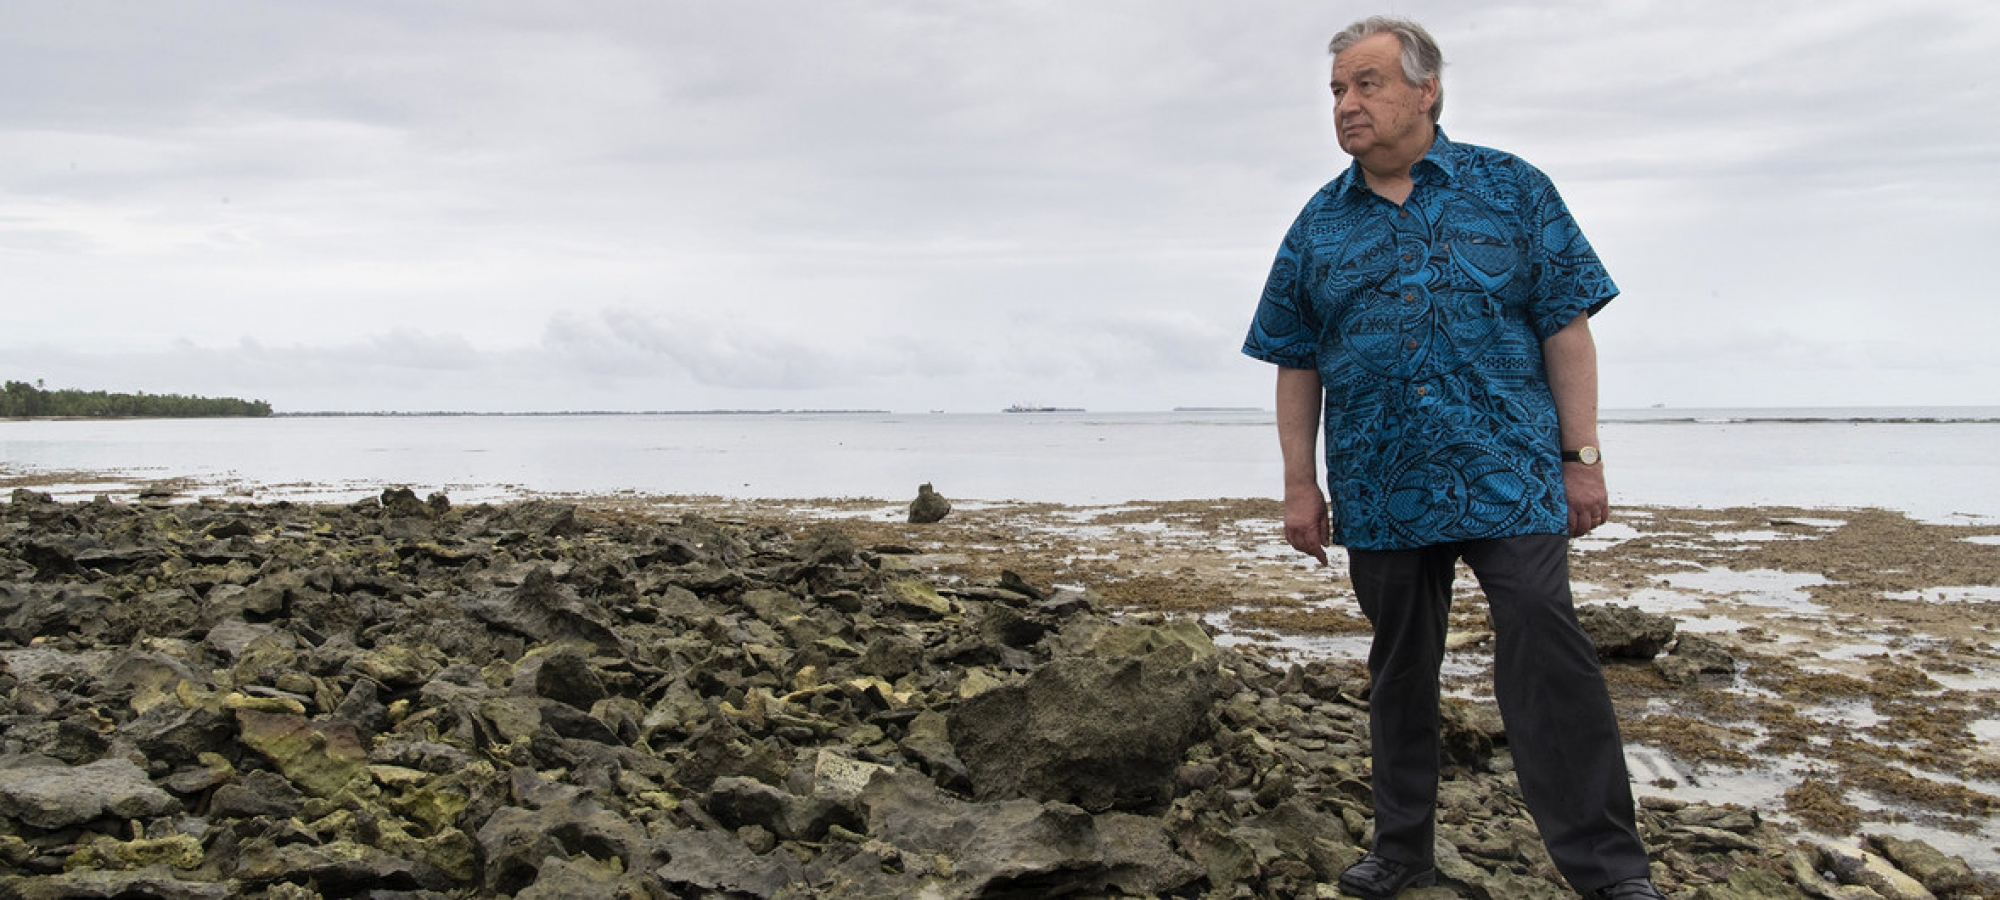 UN Photo/Mark Garten The UN Secretary-General António Guterres visited the low-lying island of Tuvalu in May 2019 to see how Pacific Ocean nations would be effected by the rise in sea levels.